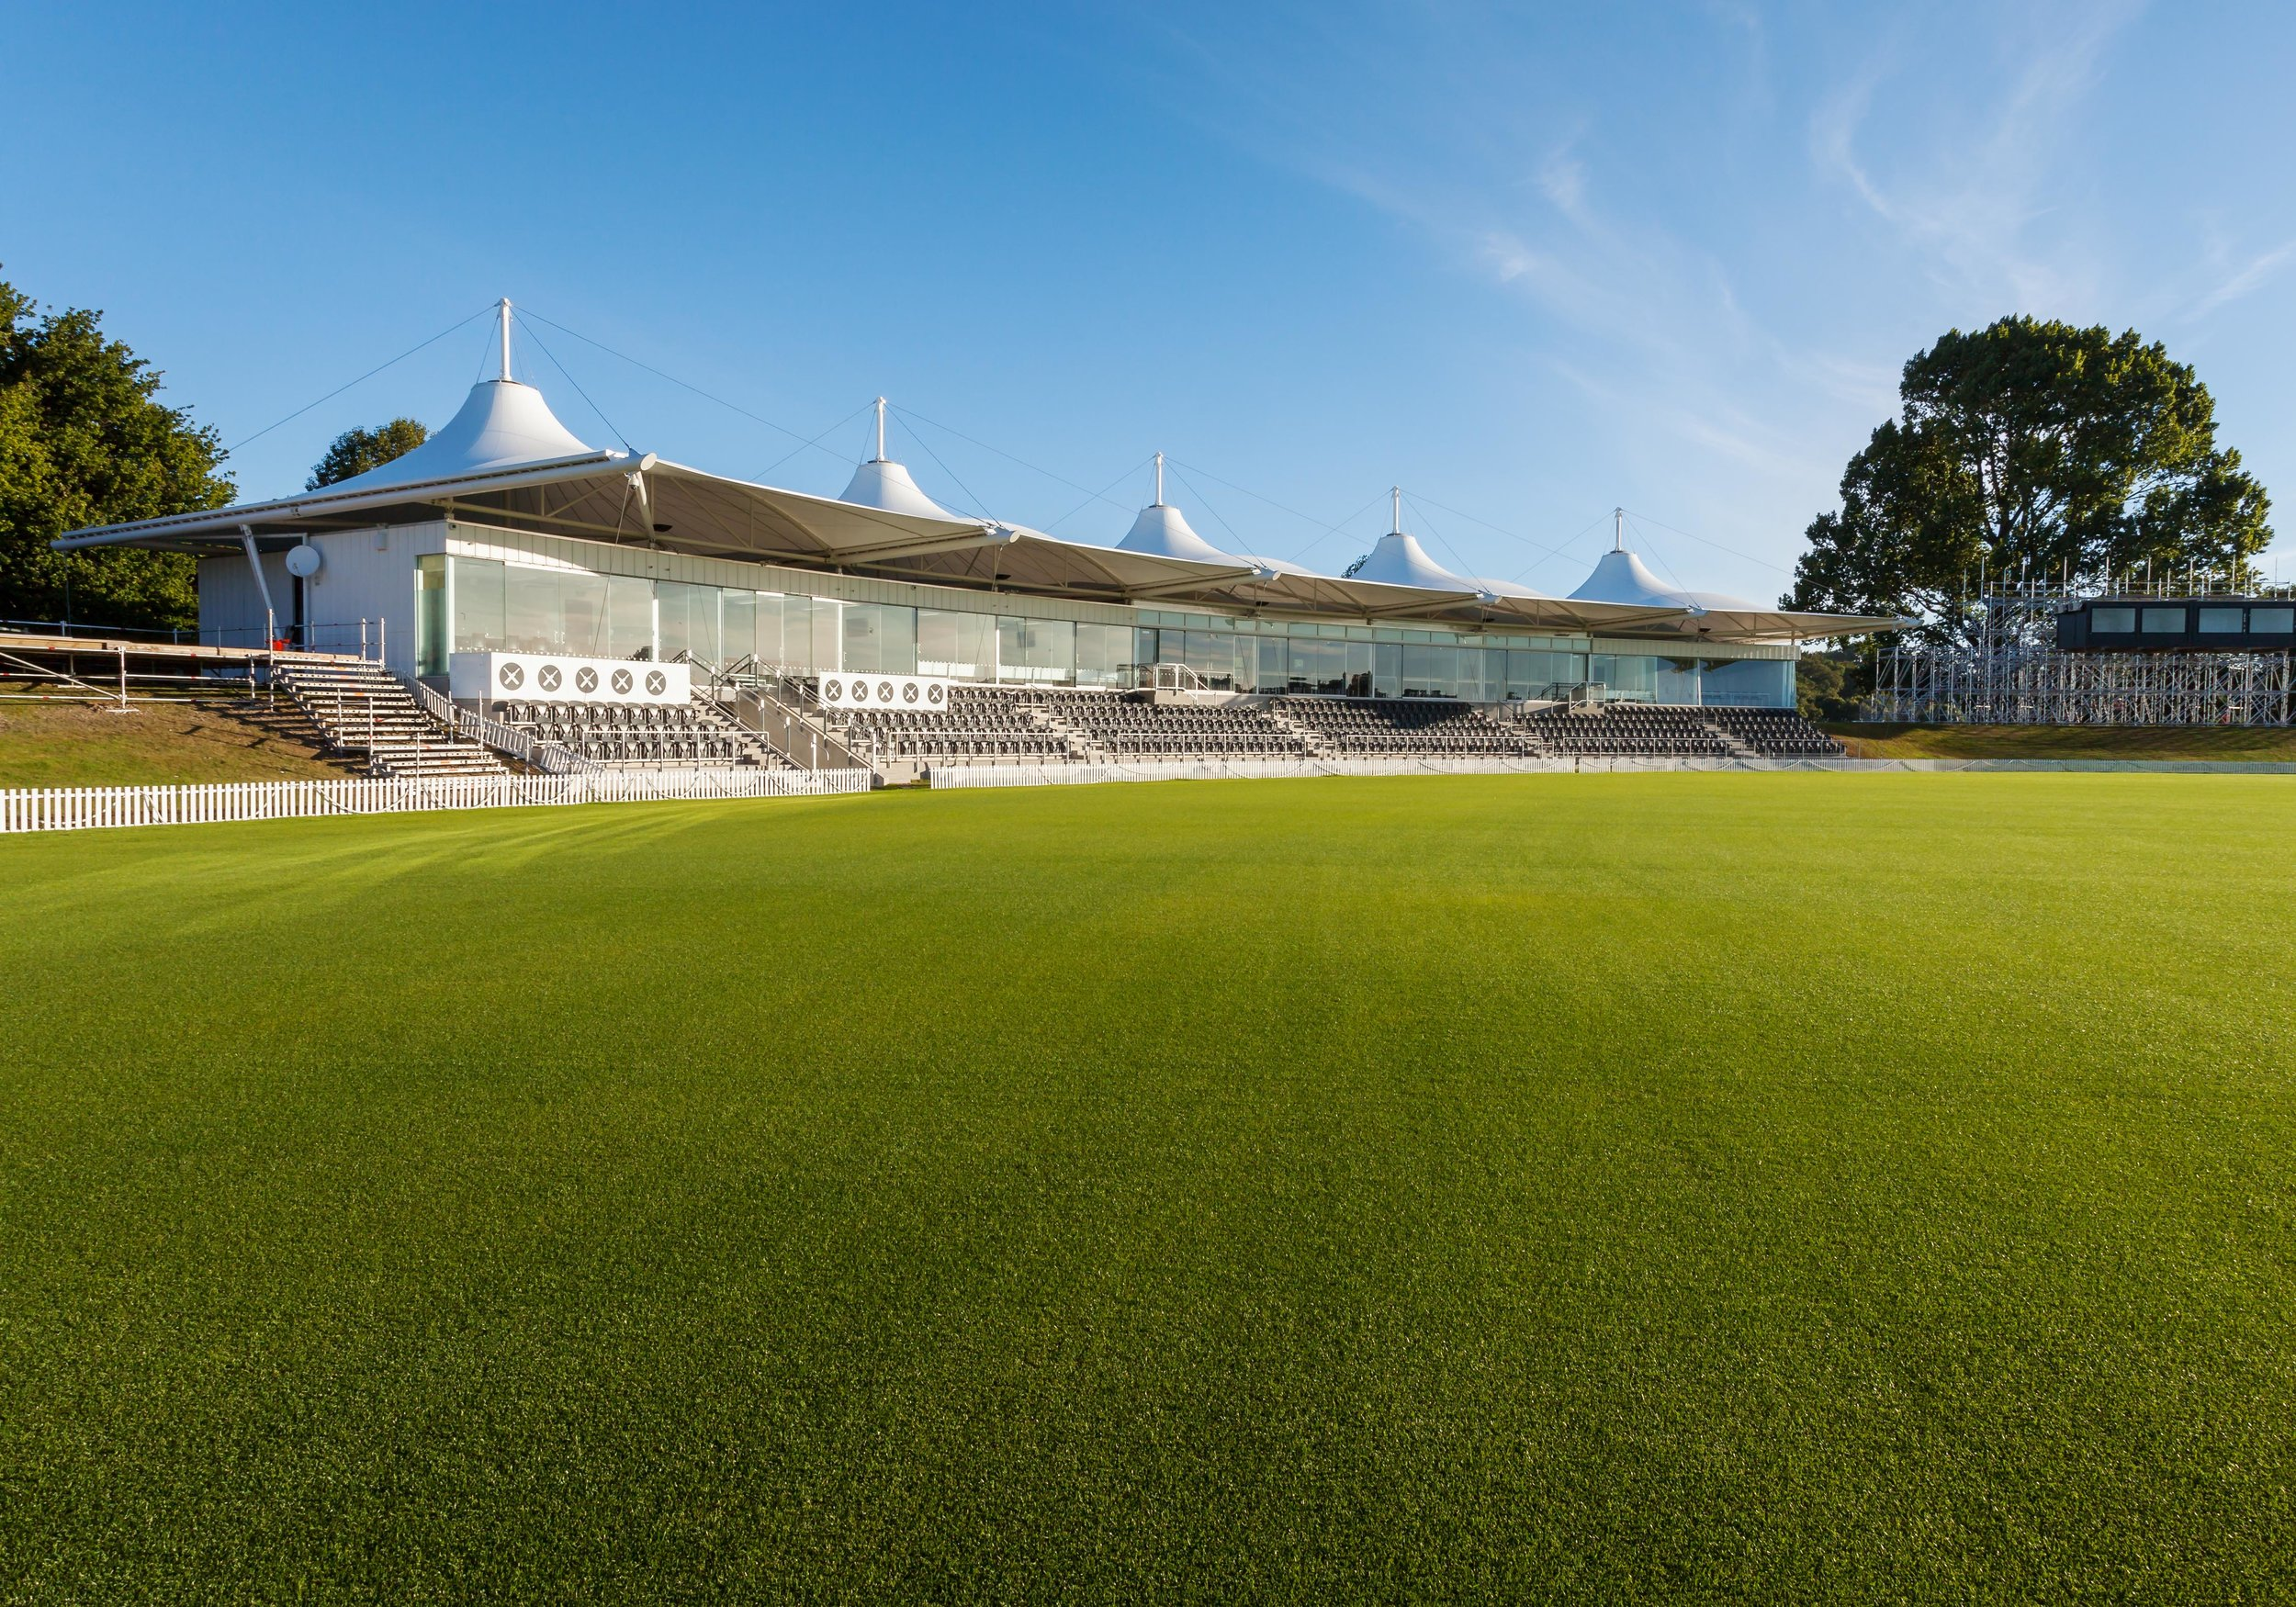 Hagley cricket oval stadium